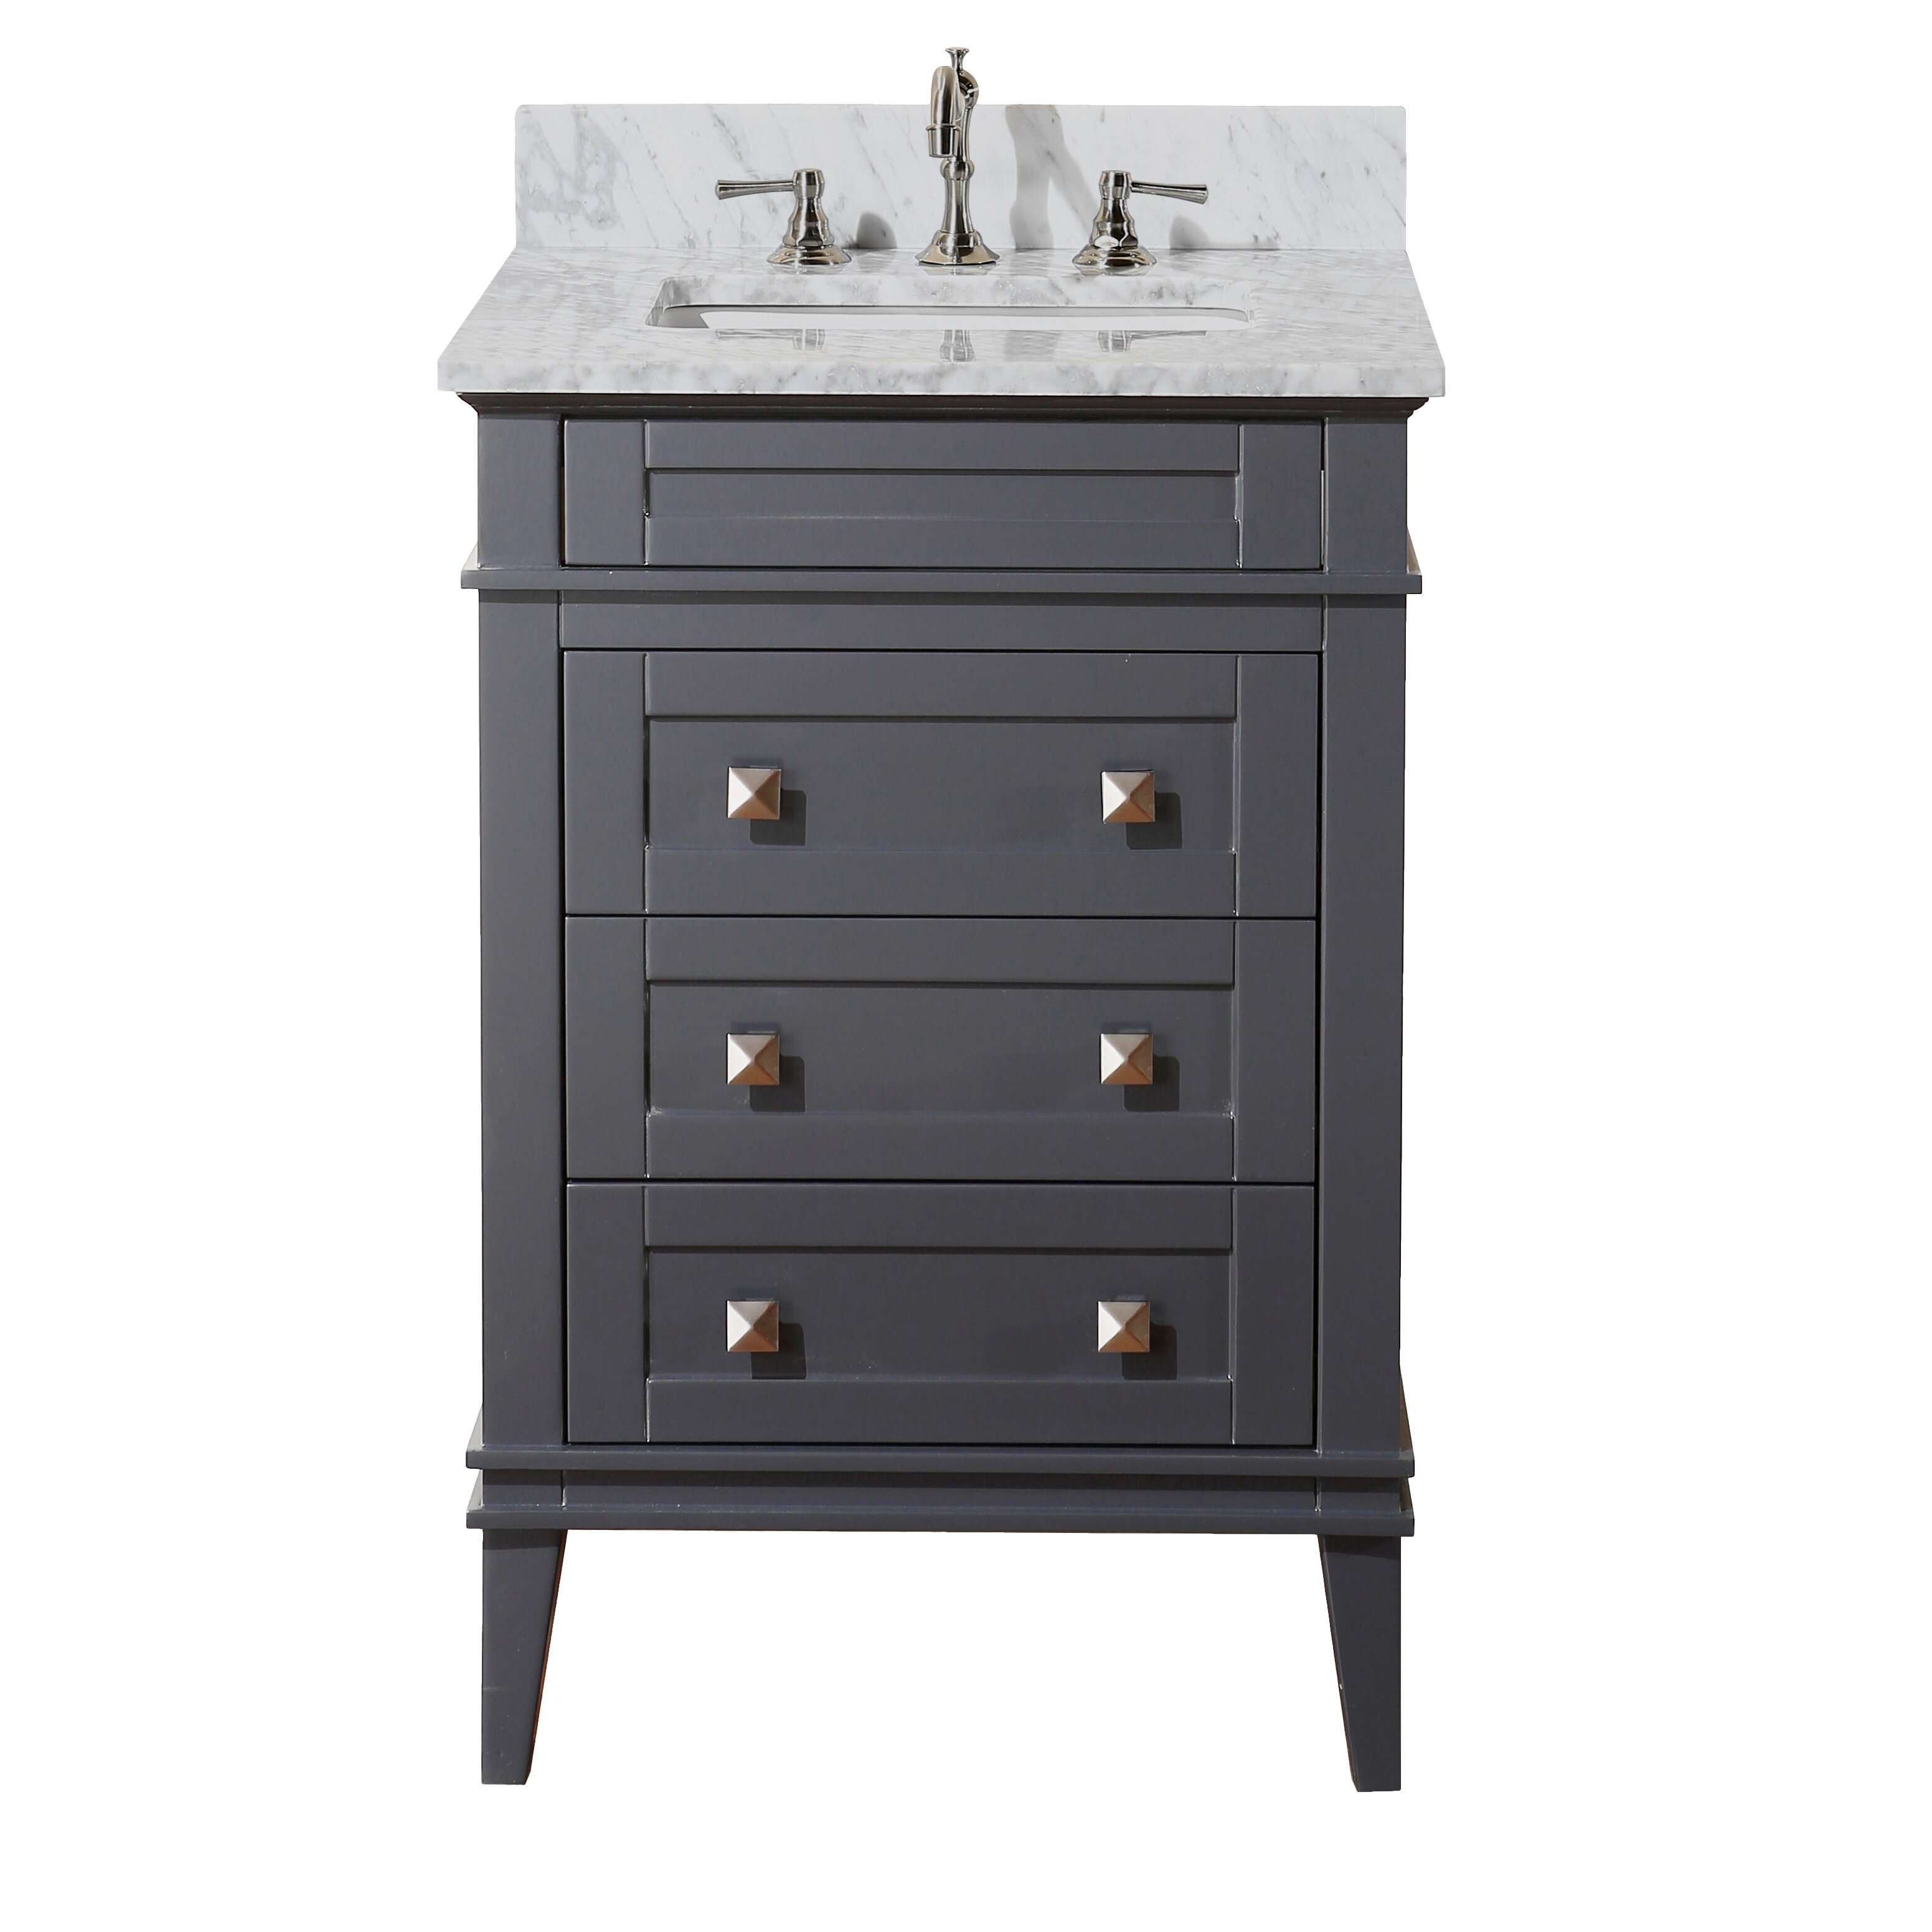 Kbc Eleanor 24 Single Bathroom Vanity Set Reviews Wayfair